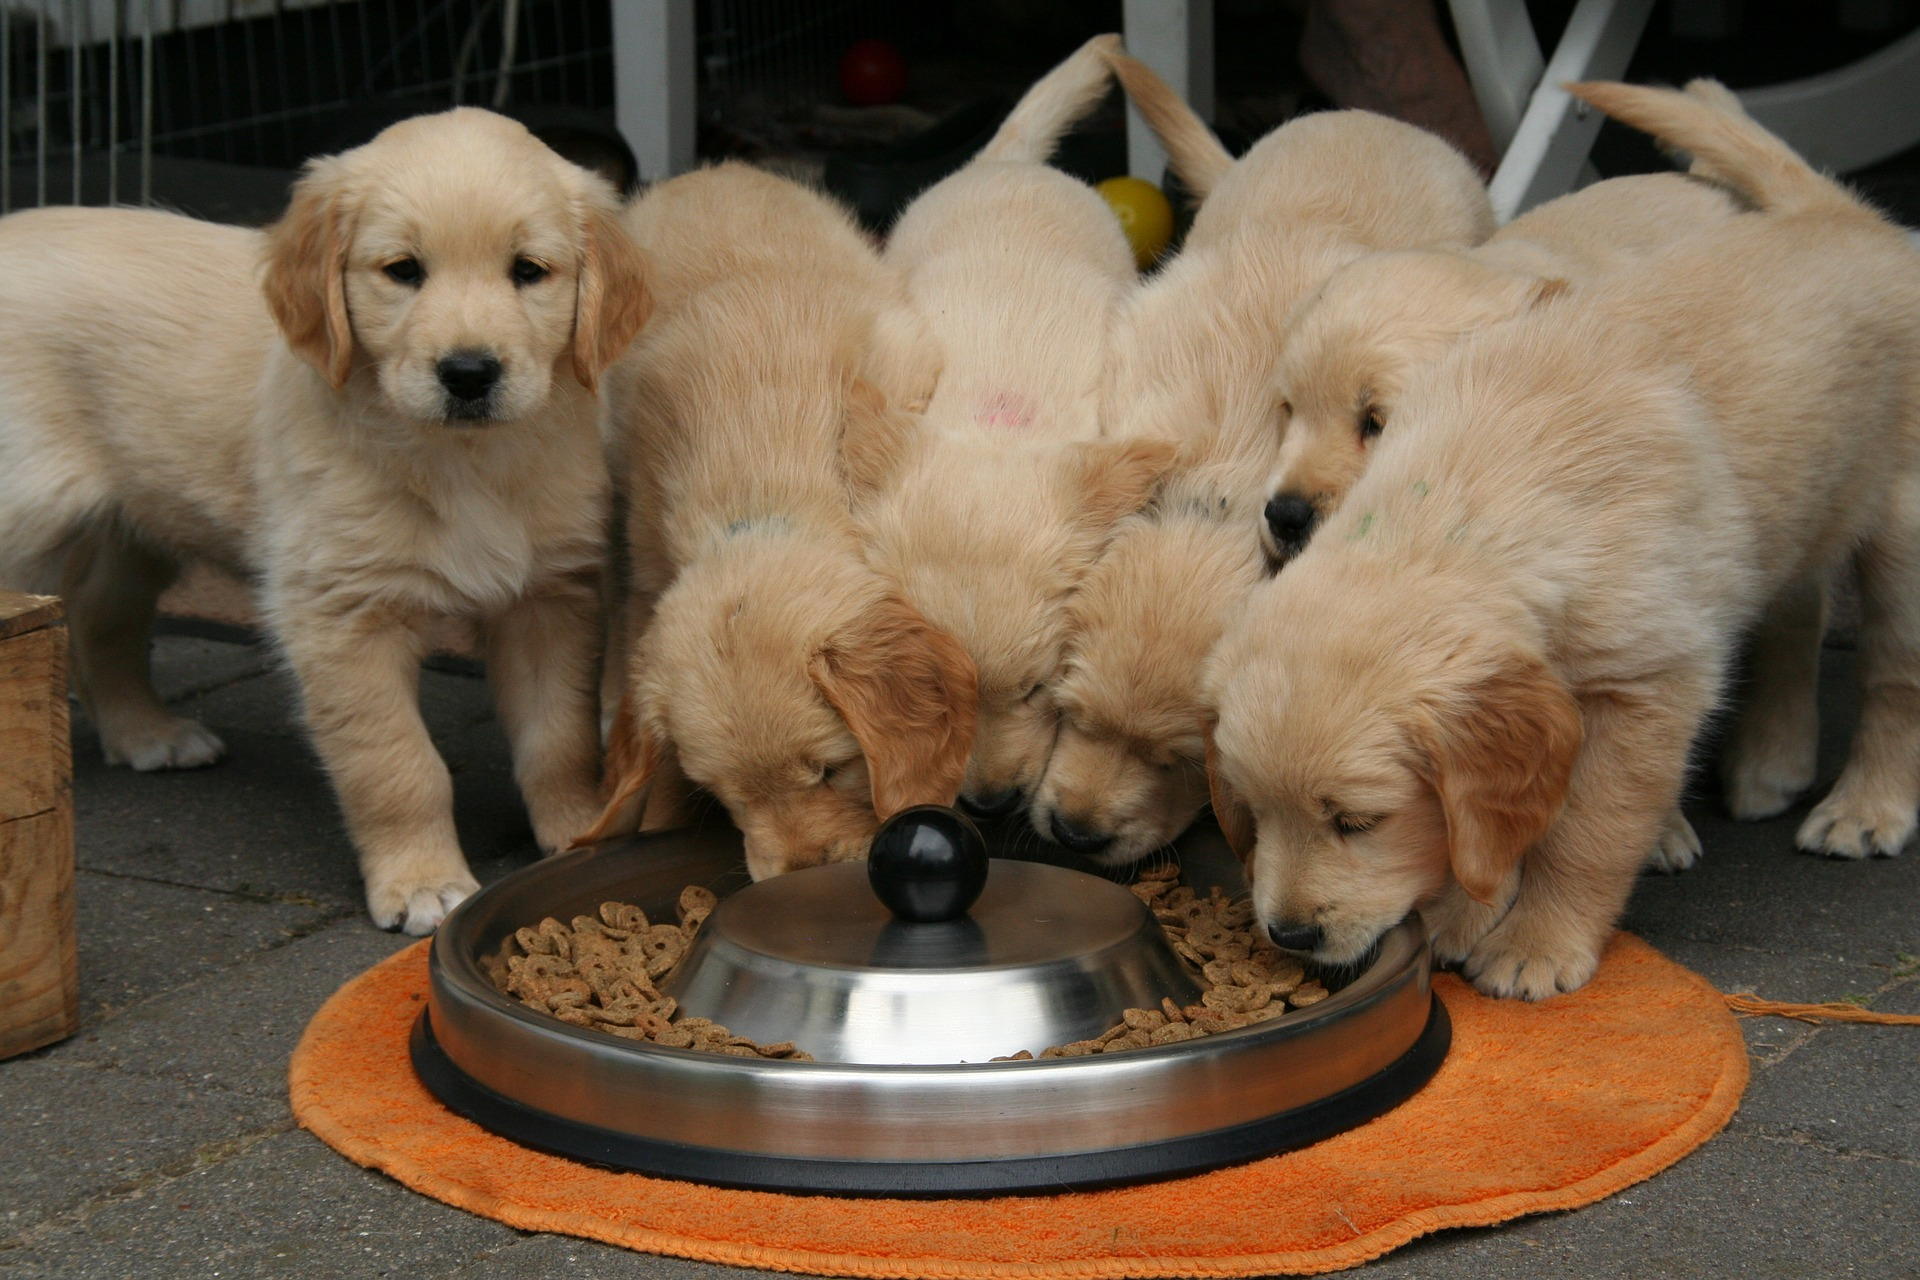 Puppy Nutrition - Kindred Spirits